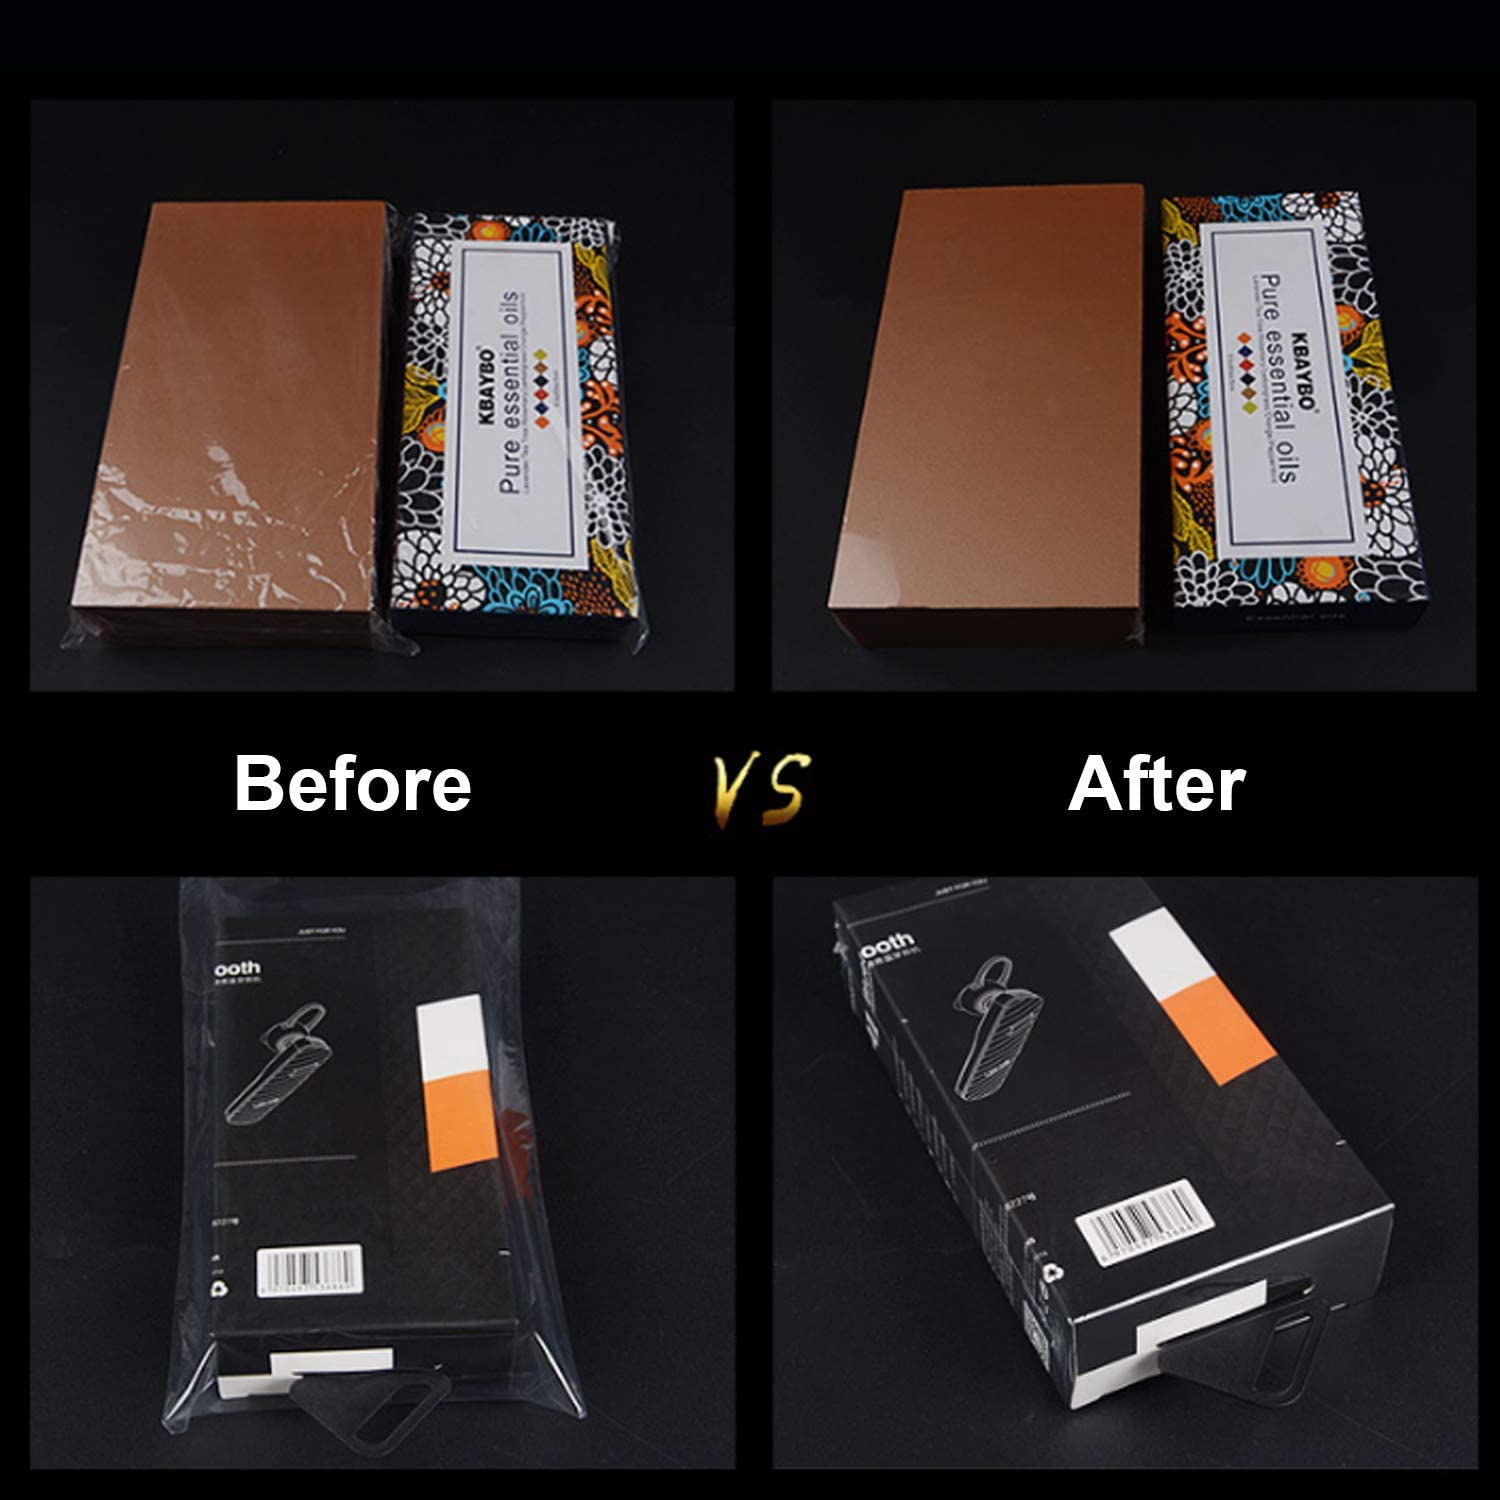 Jars and Homemade DIY Projects Shrink Wrap Bags,100 Pcs 7x14 Inches Clear PVC Heat Shrink Wrap for Packagaing Soap,Bath Bombs,Candles,Small Gifts